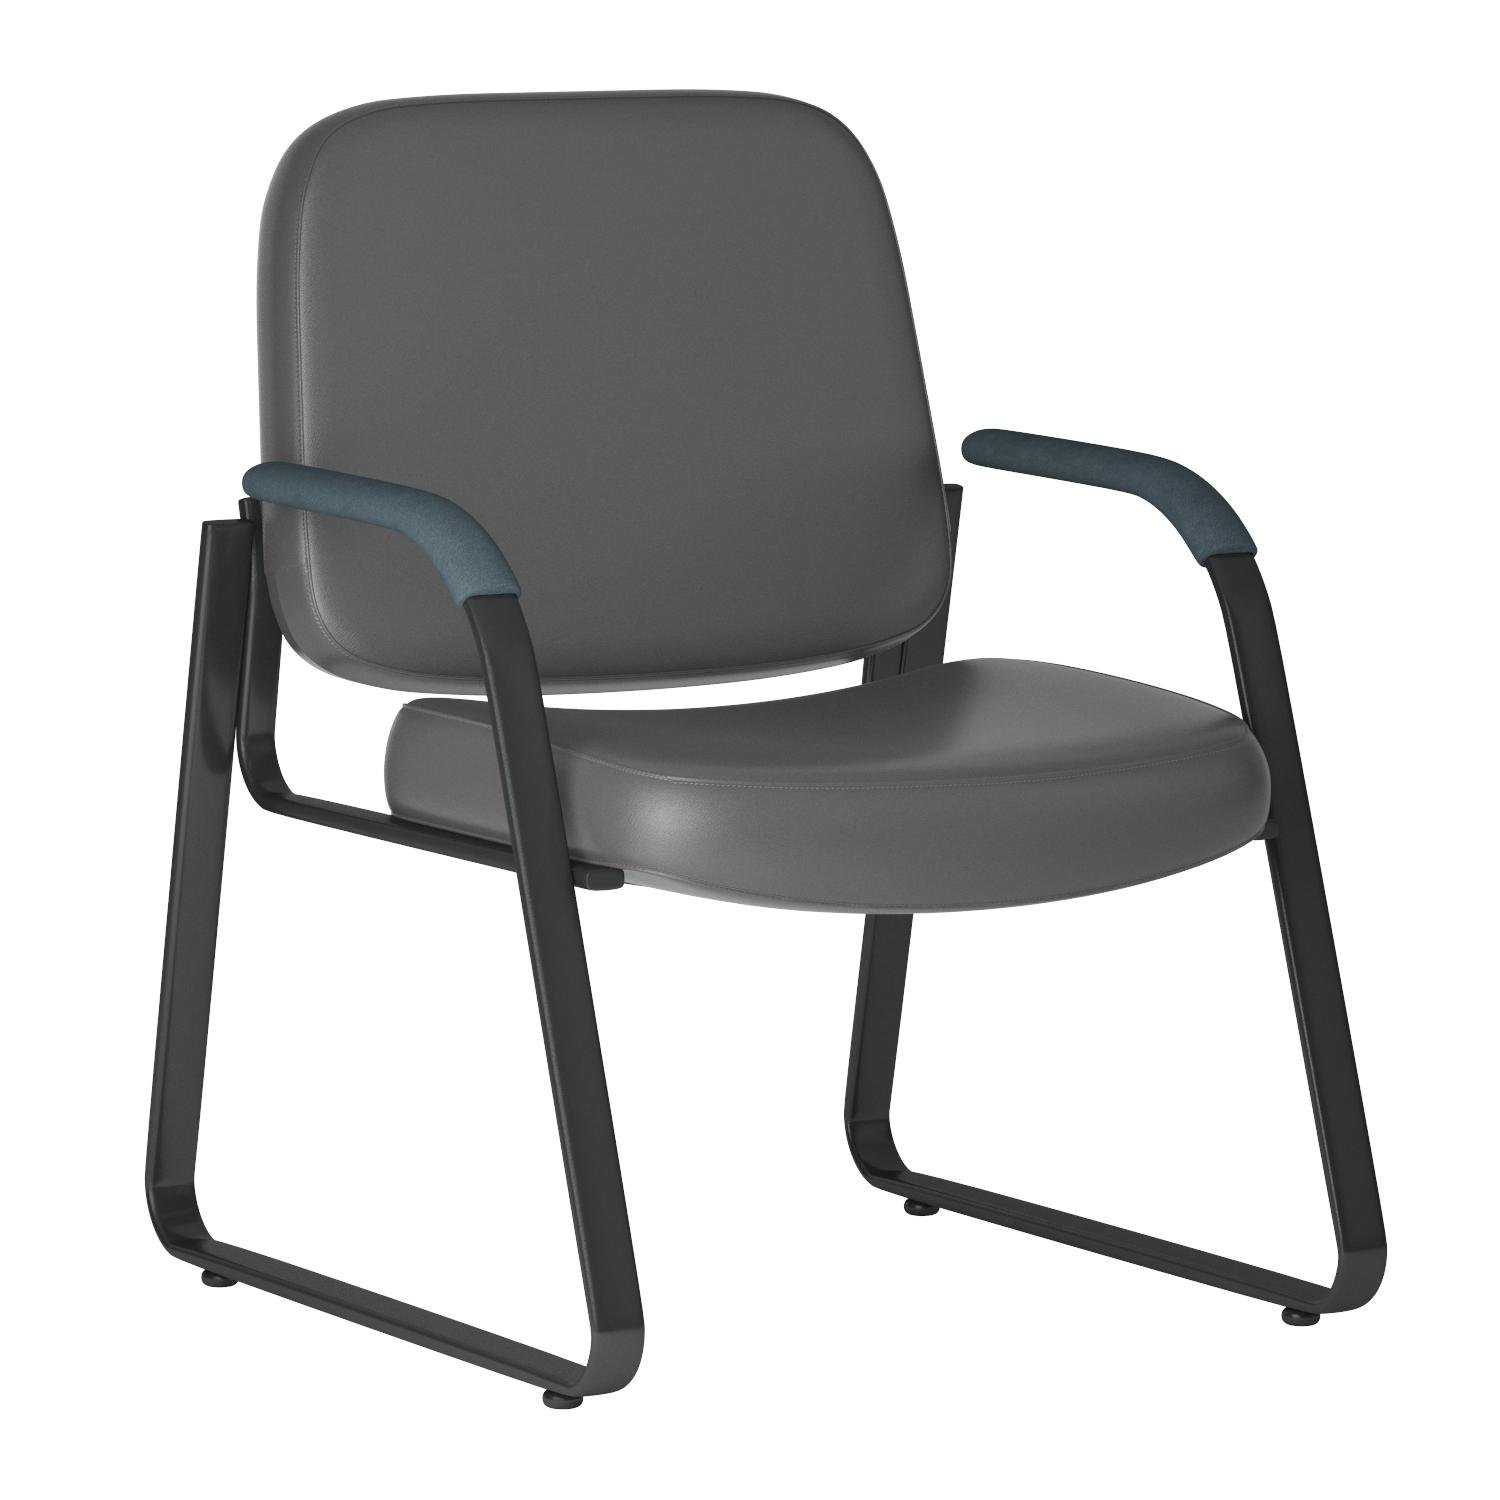 OFM Reception Chair with Arms - Anti-Microbial/Anti-Bacterial Vinyl Guest Chair, Charcoal (403-VAM) by OFM (Image #6)